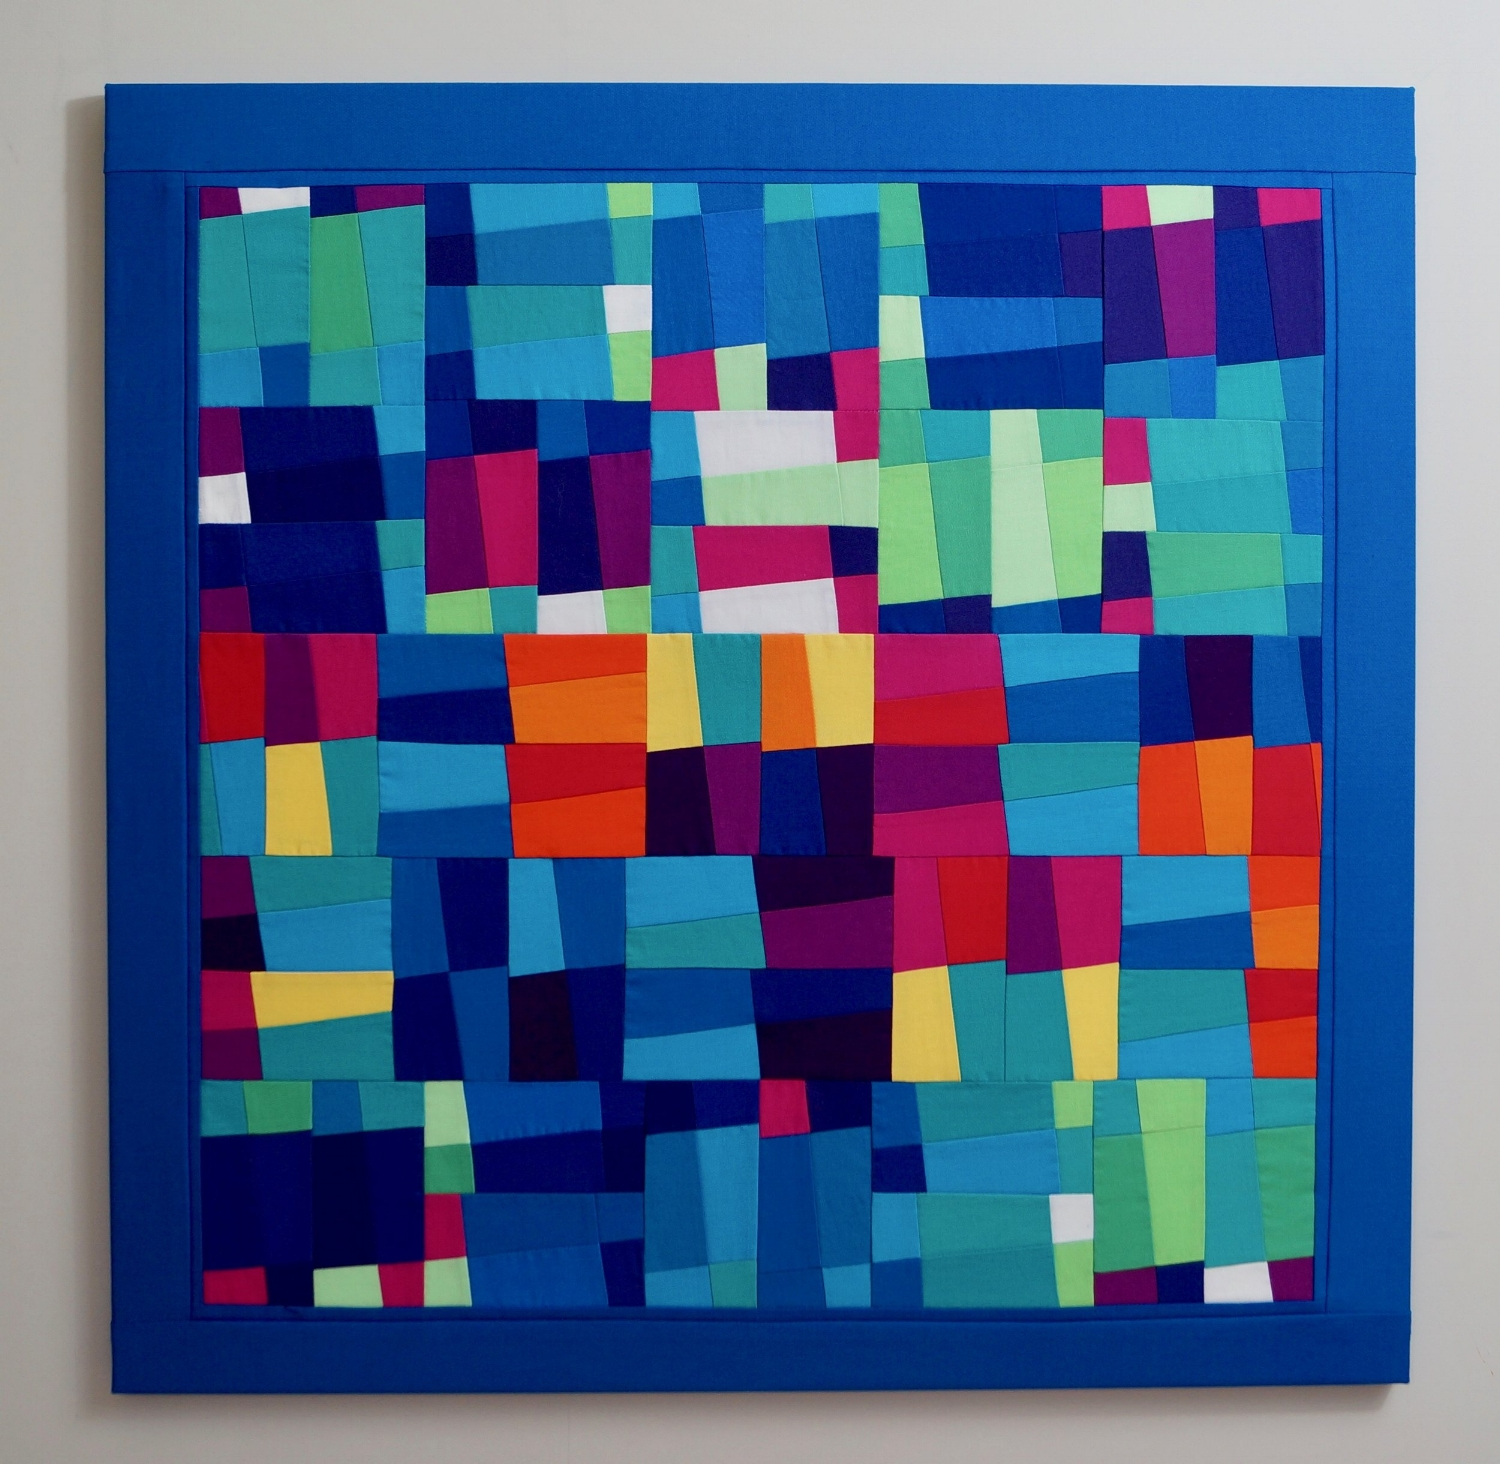 Sequence: 1 - 75cm square2018* 100% cotton fabric* 100% cotton batting* calico backing* tie quilted* stretched on a canvas stretcher* split batten wall fastening* signed and dated on reverse£1463